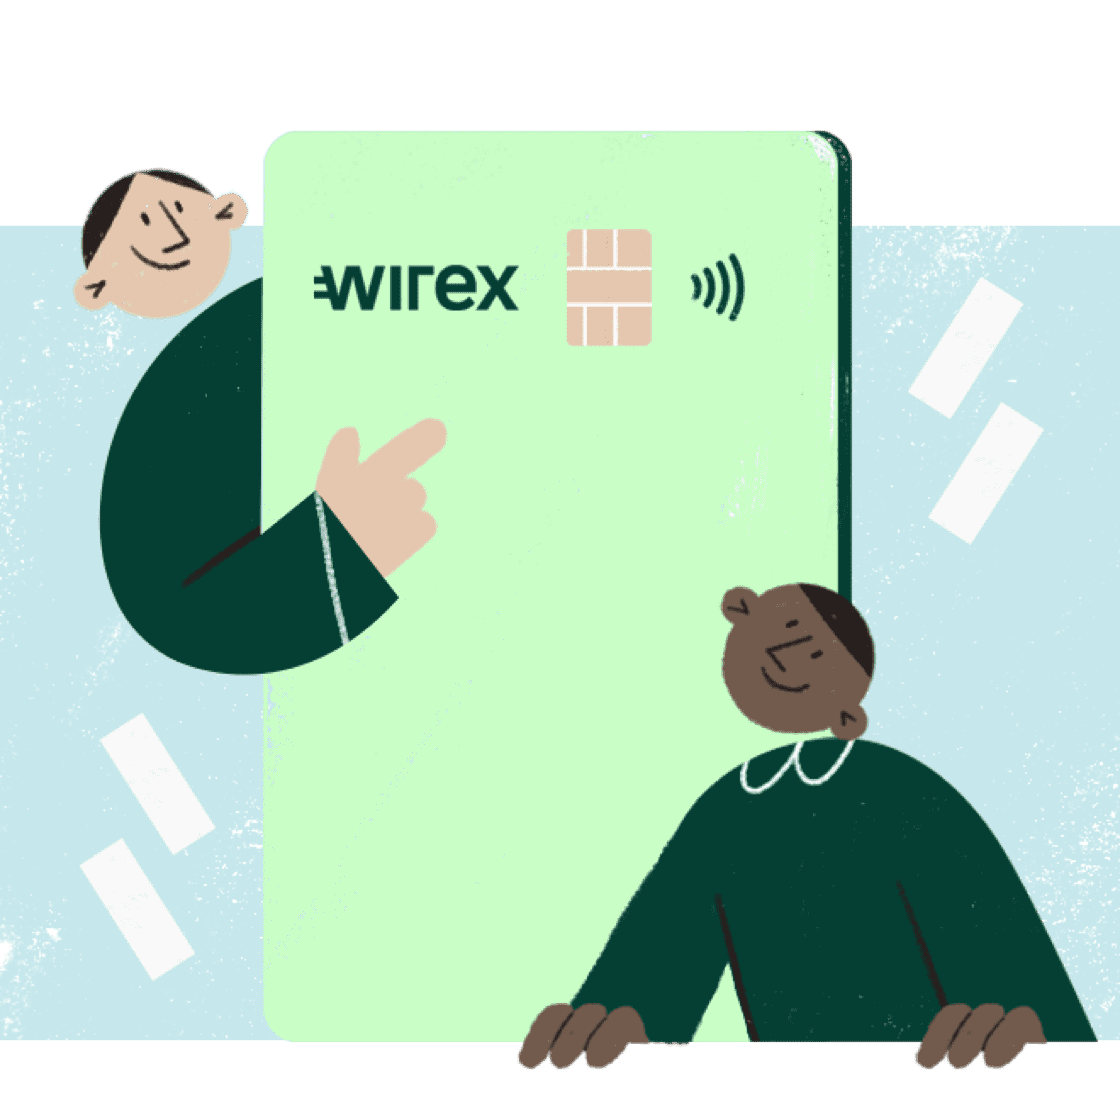 wirex visa card